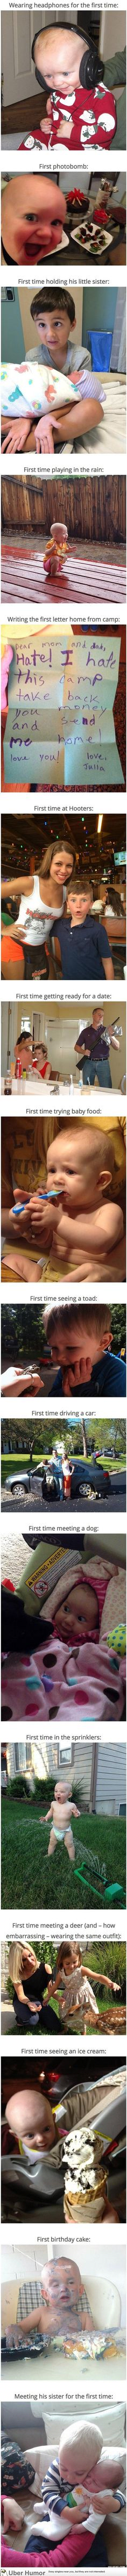 First Time For Everythingツ #Humor #Funny #Lol